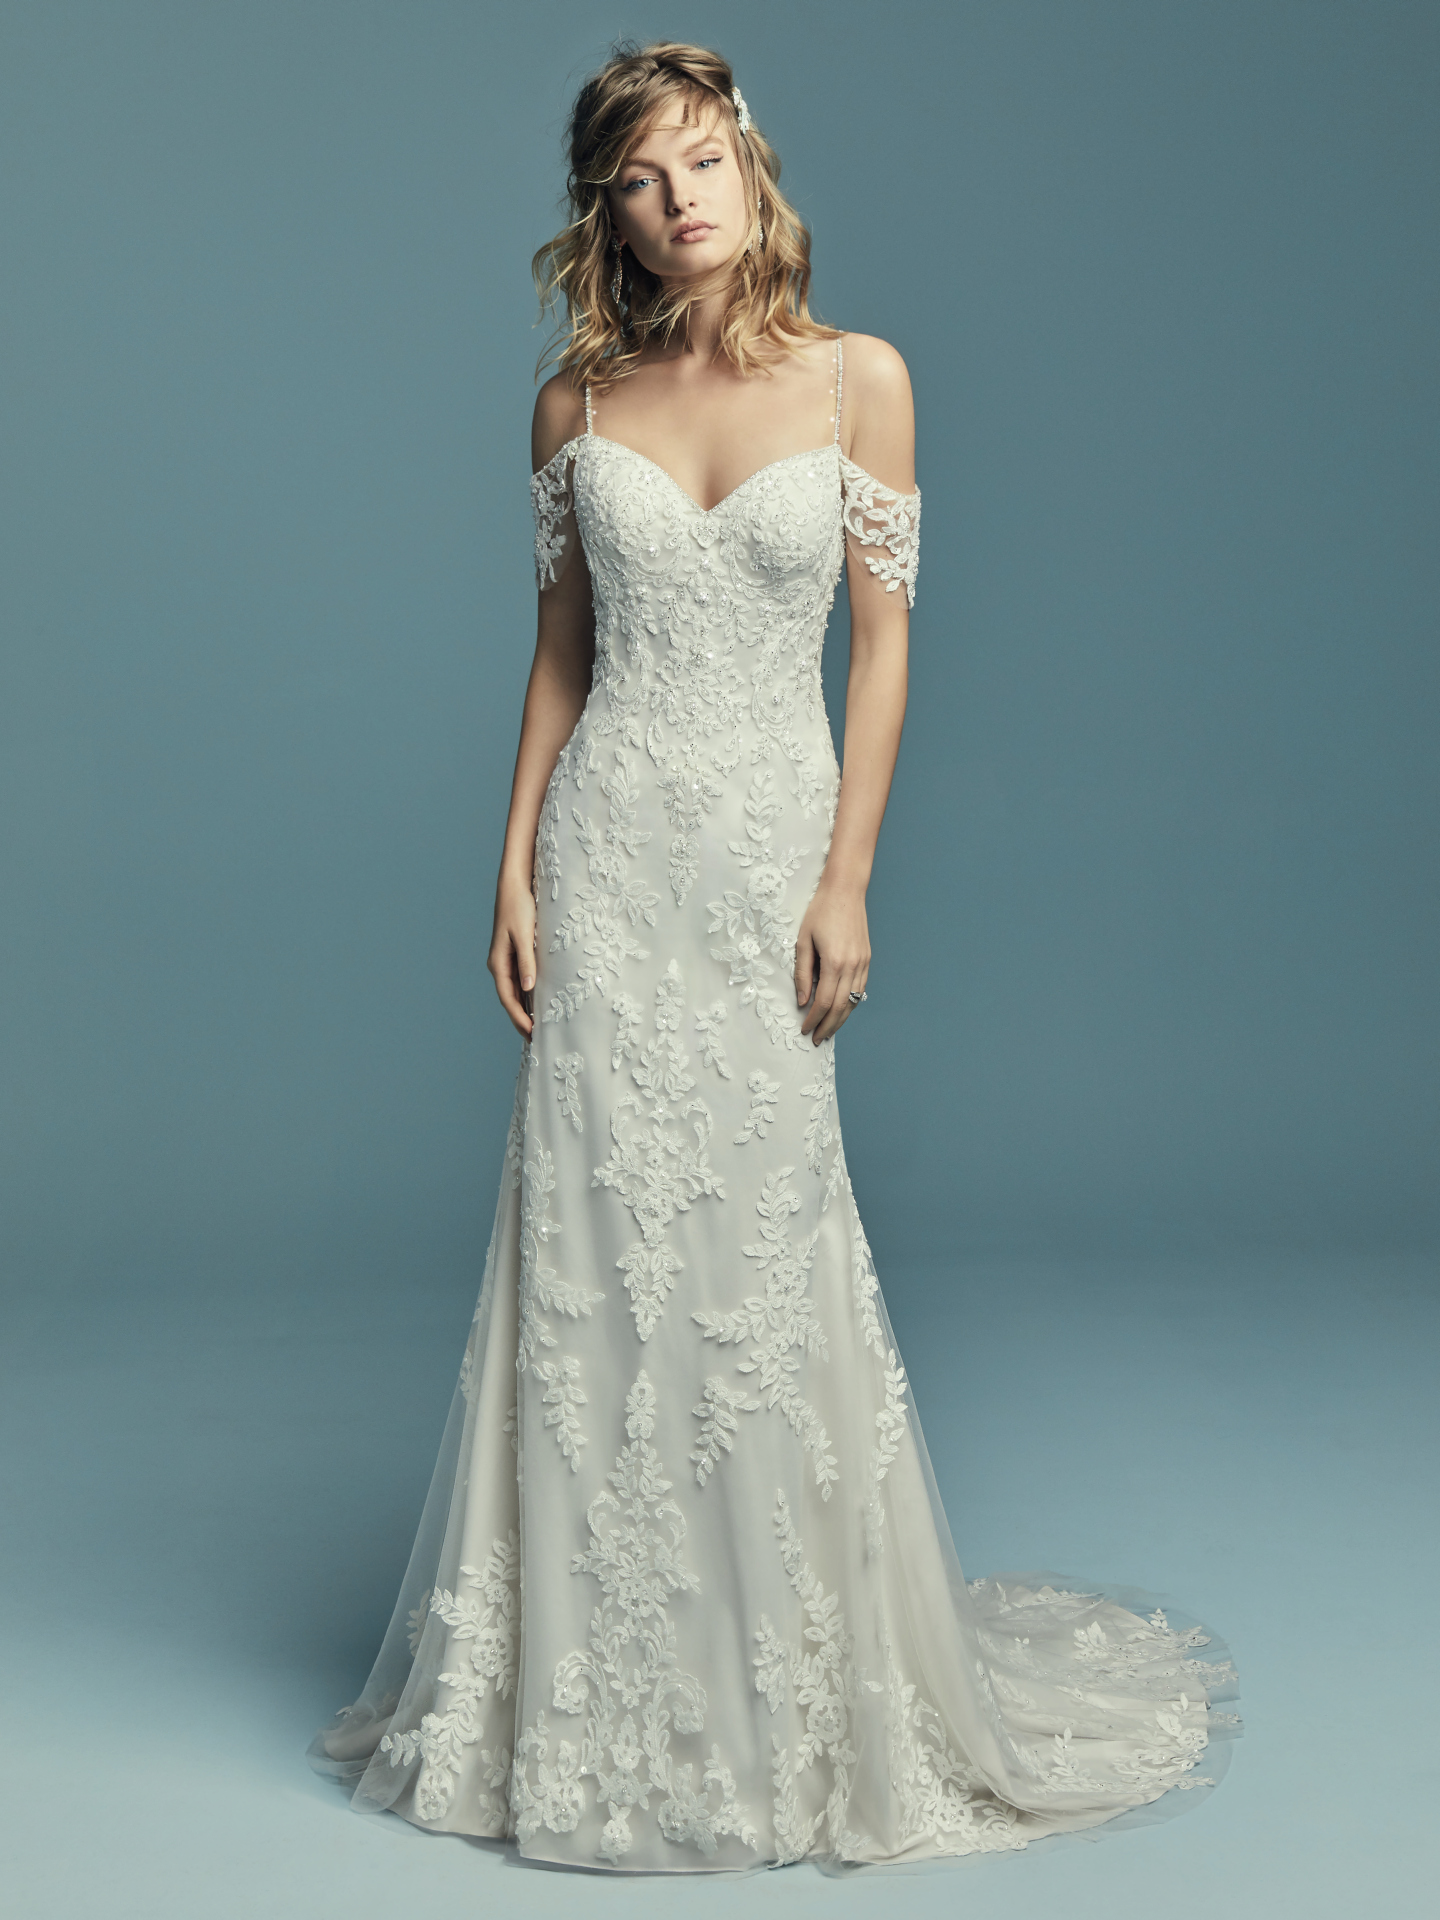 New Boho Wedding Dresses from the Lucienne Collection - Angelica by Maggie Sottero